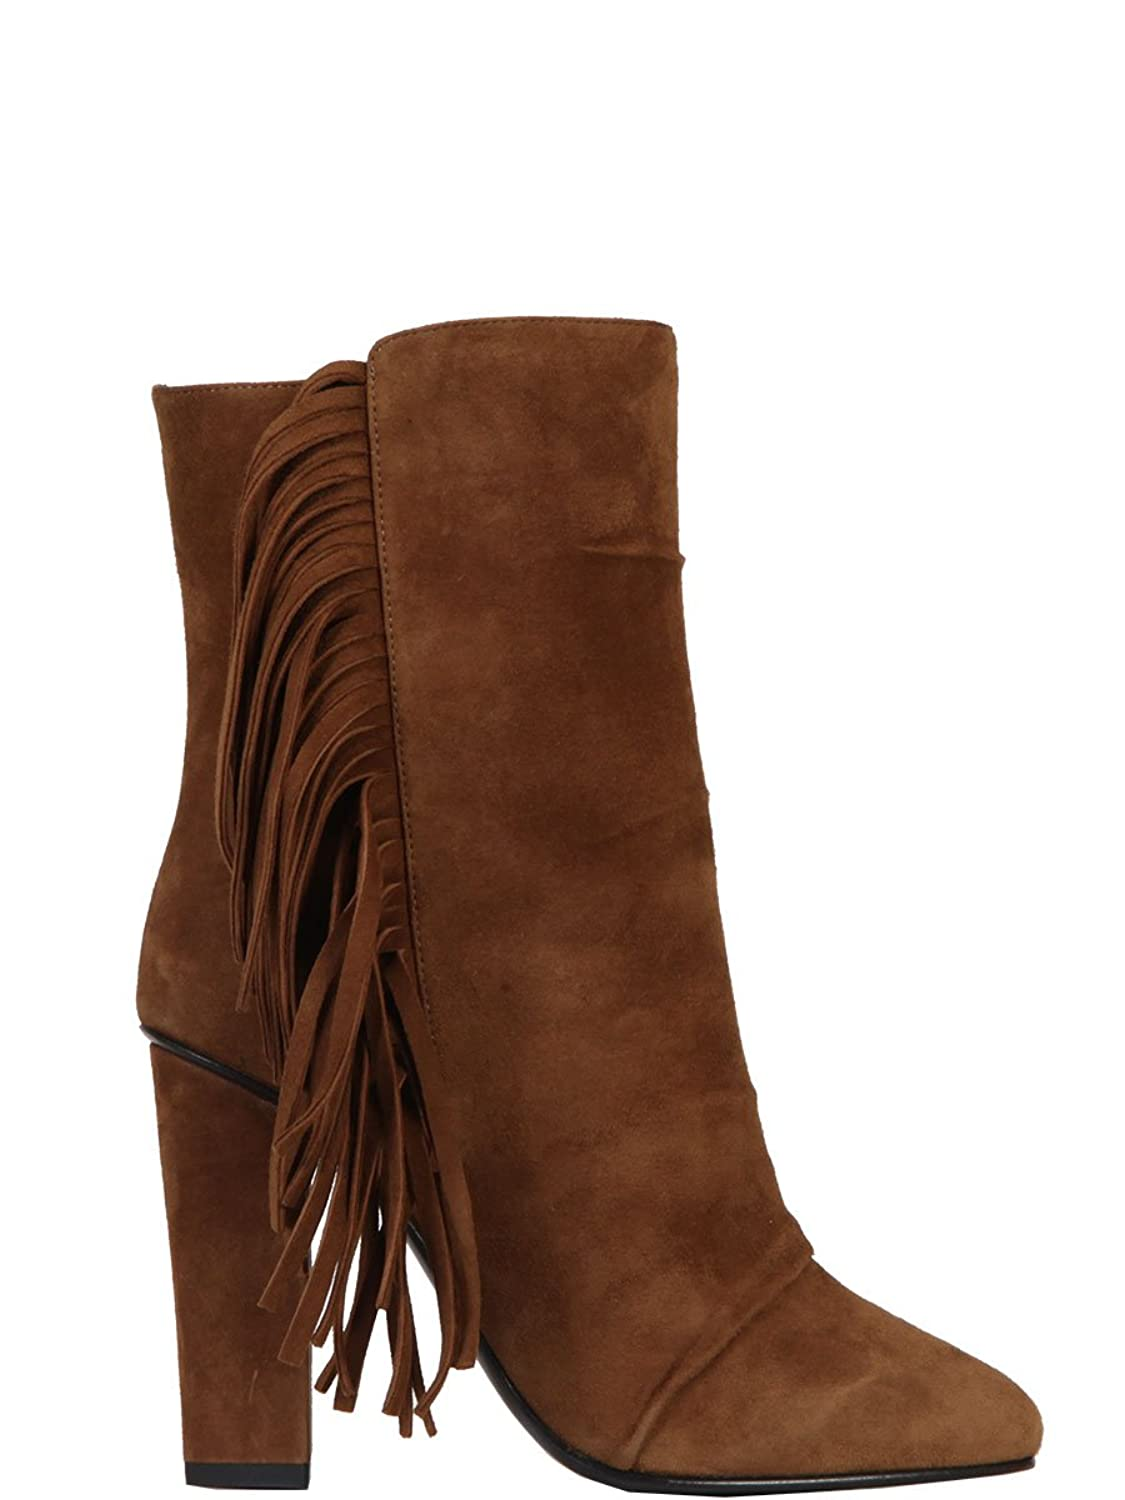 GIUSEPPE ZANOTTI WOMEN'S 5708561465 BROWN SUEDE ANKLE BOOTS